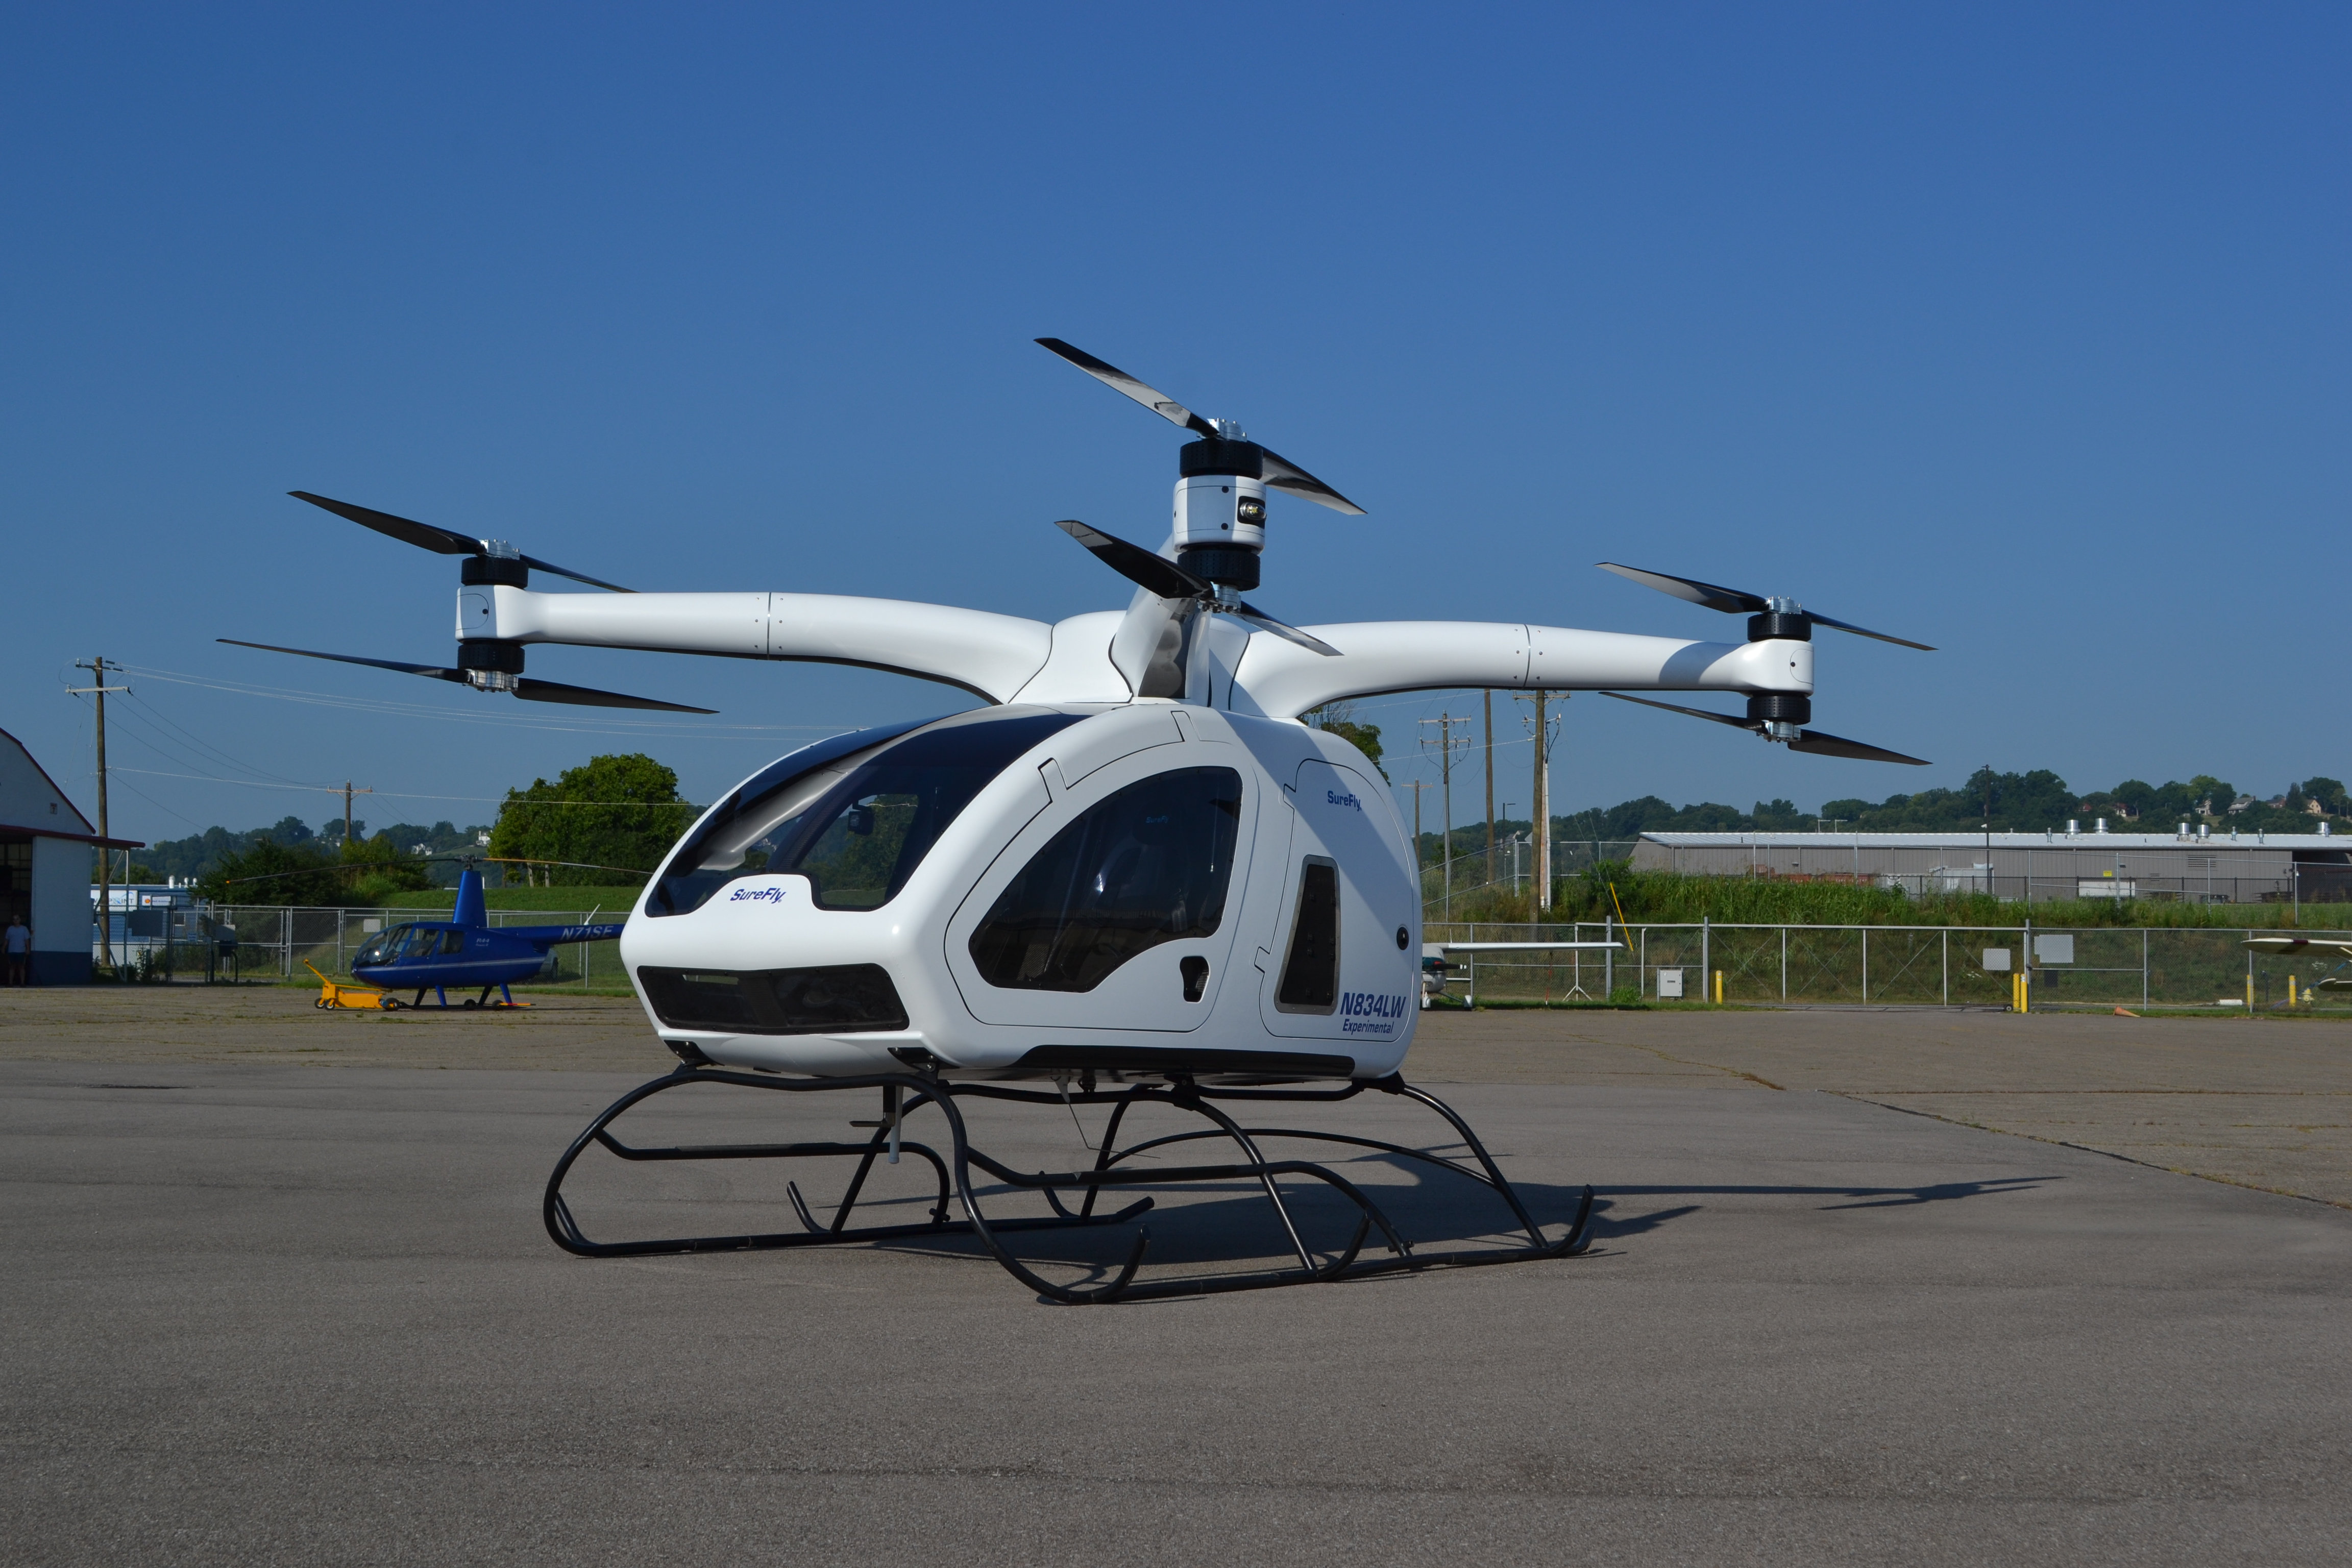 urban air taxi Workhorse SureFly left side